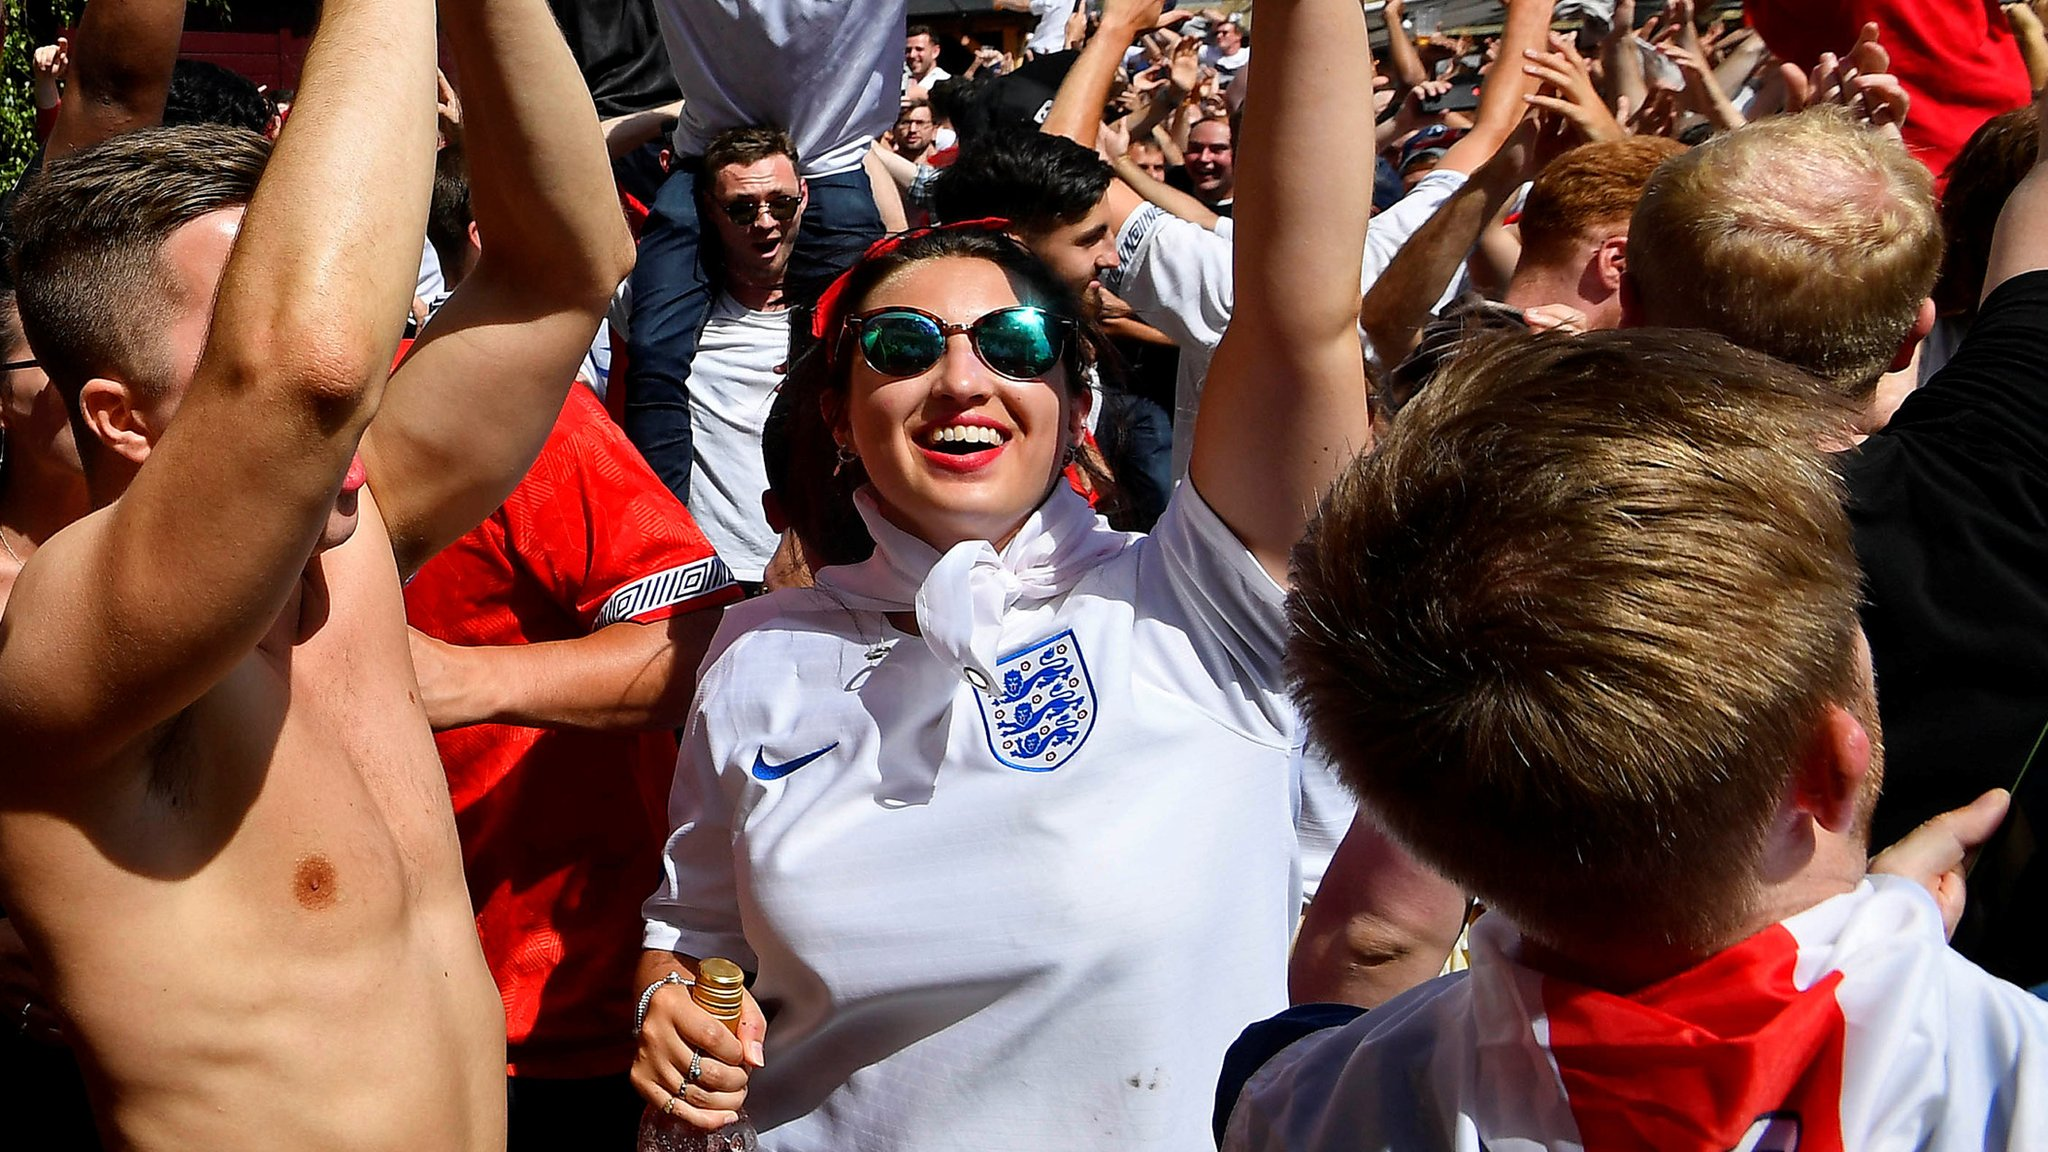 Its coming home! - Englands win charted in 15 tweets